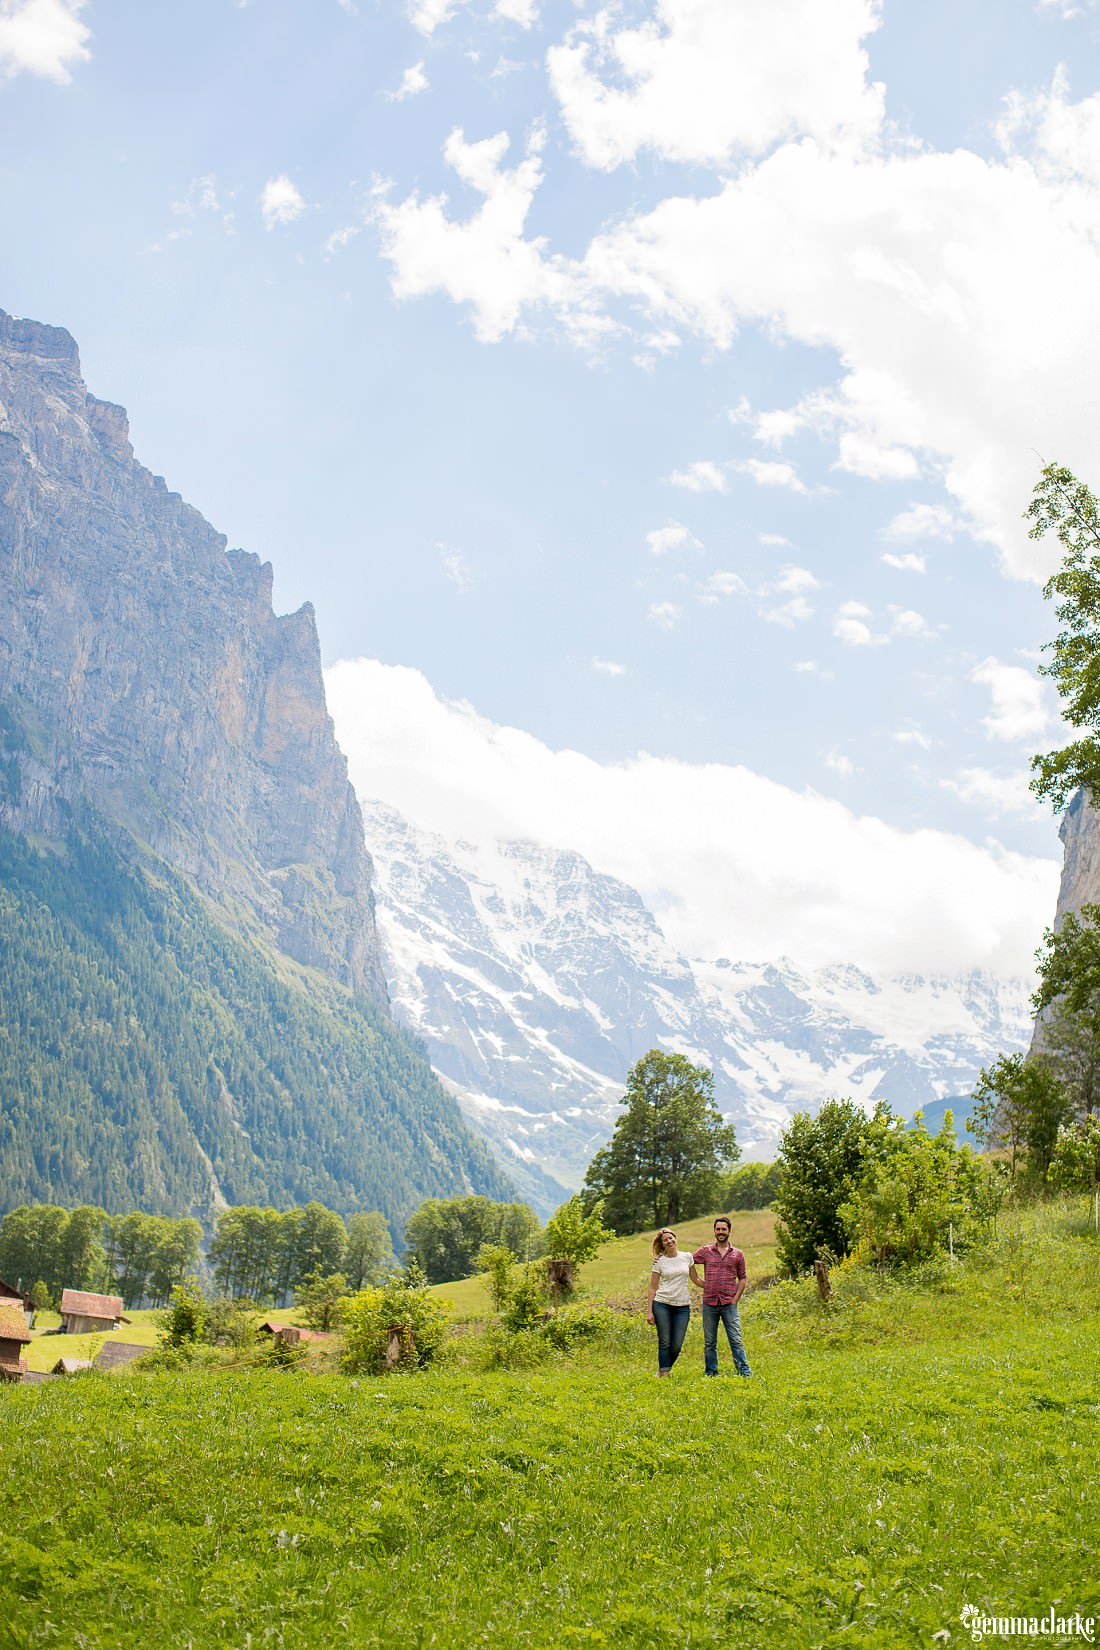 A man and woman with an arm around each other standing in a valley surrounded by mountains - Lifestyle Portraits in Switzerland